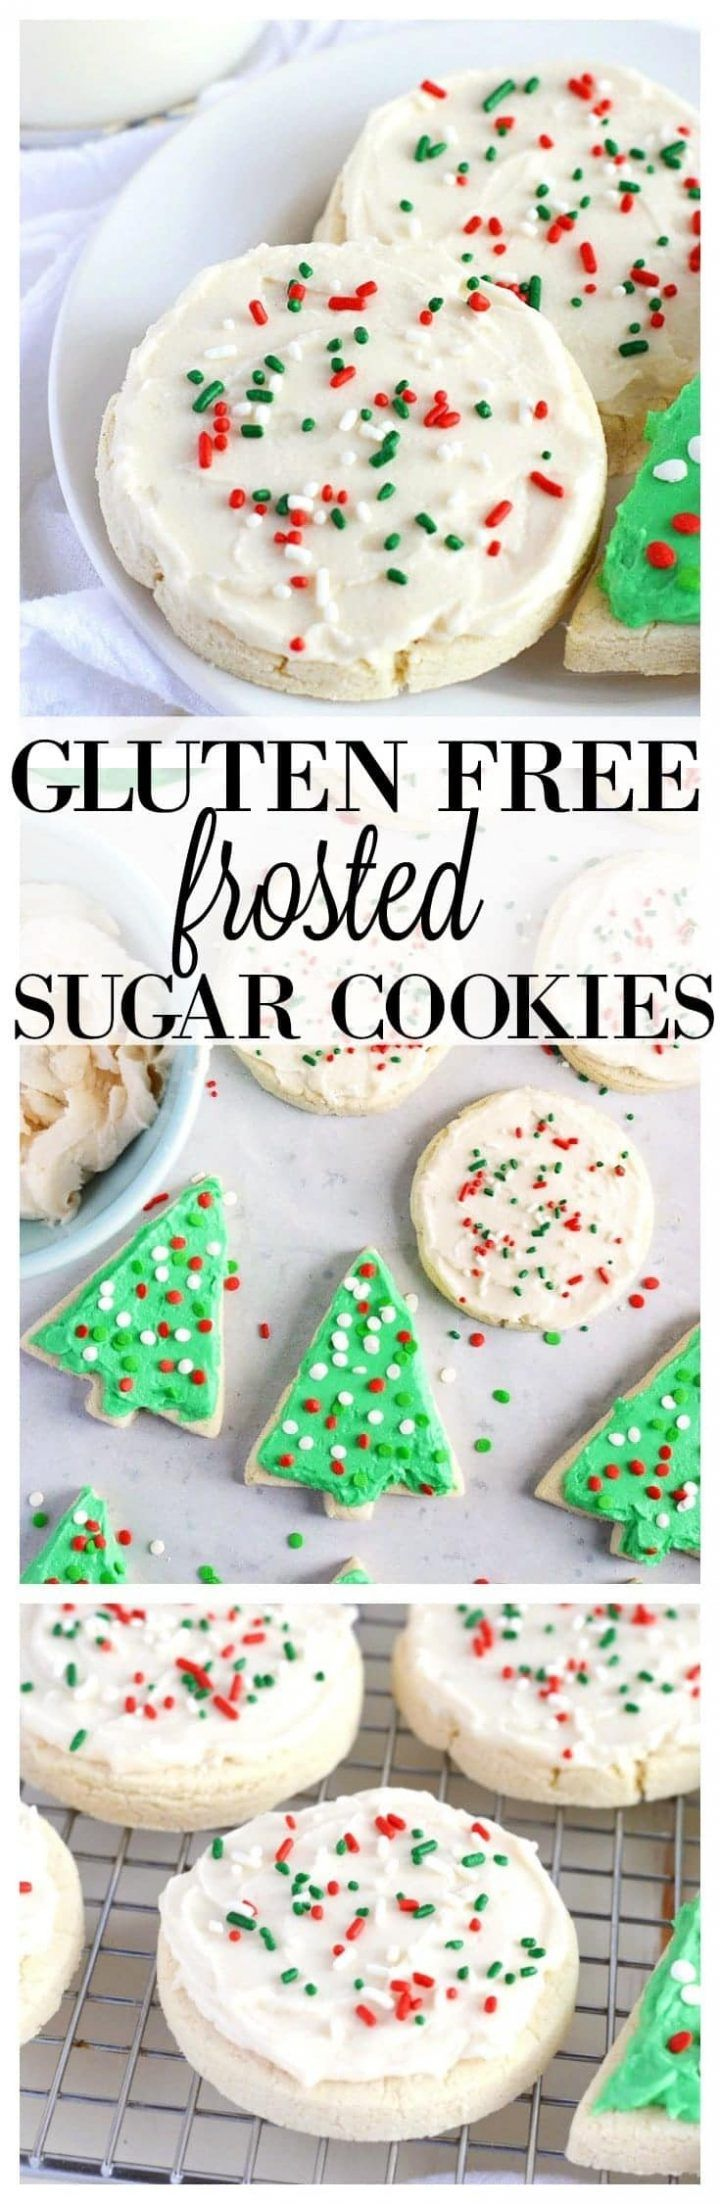 Gluten free frosted sugar cookies recipe with images